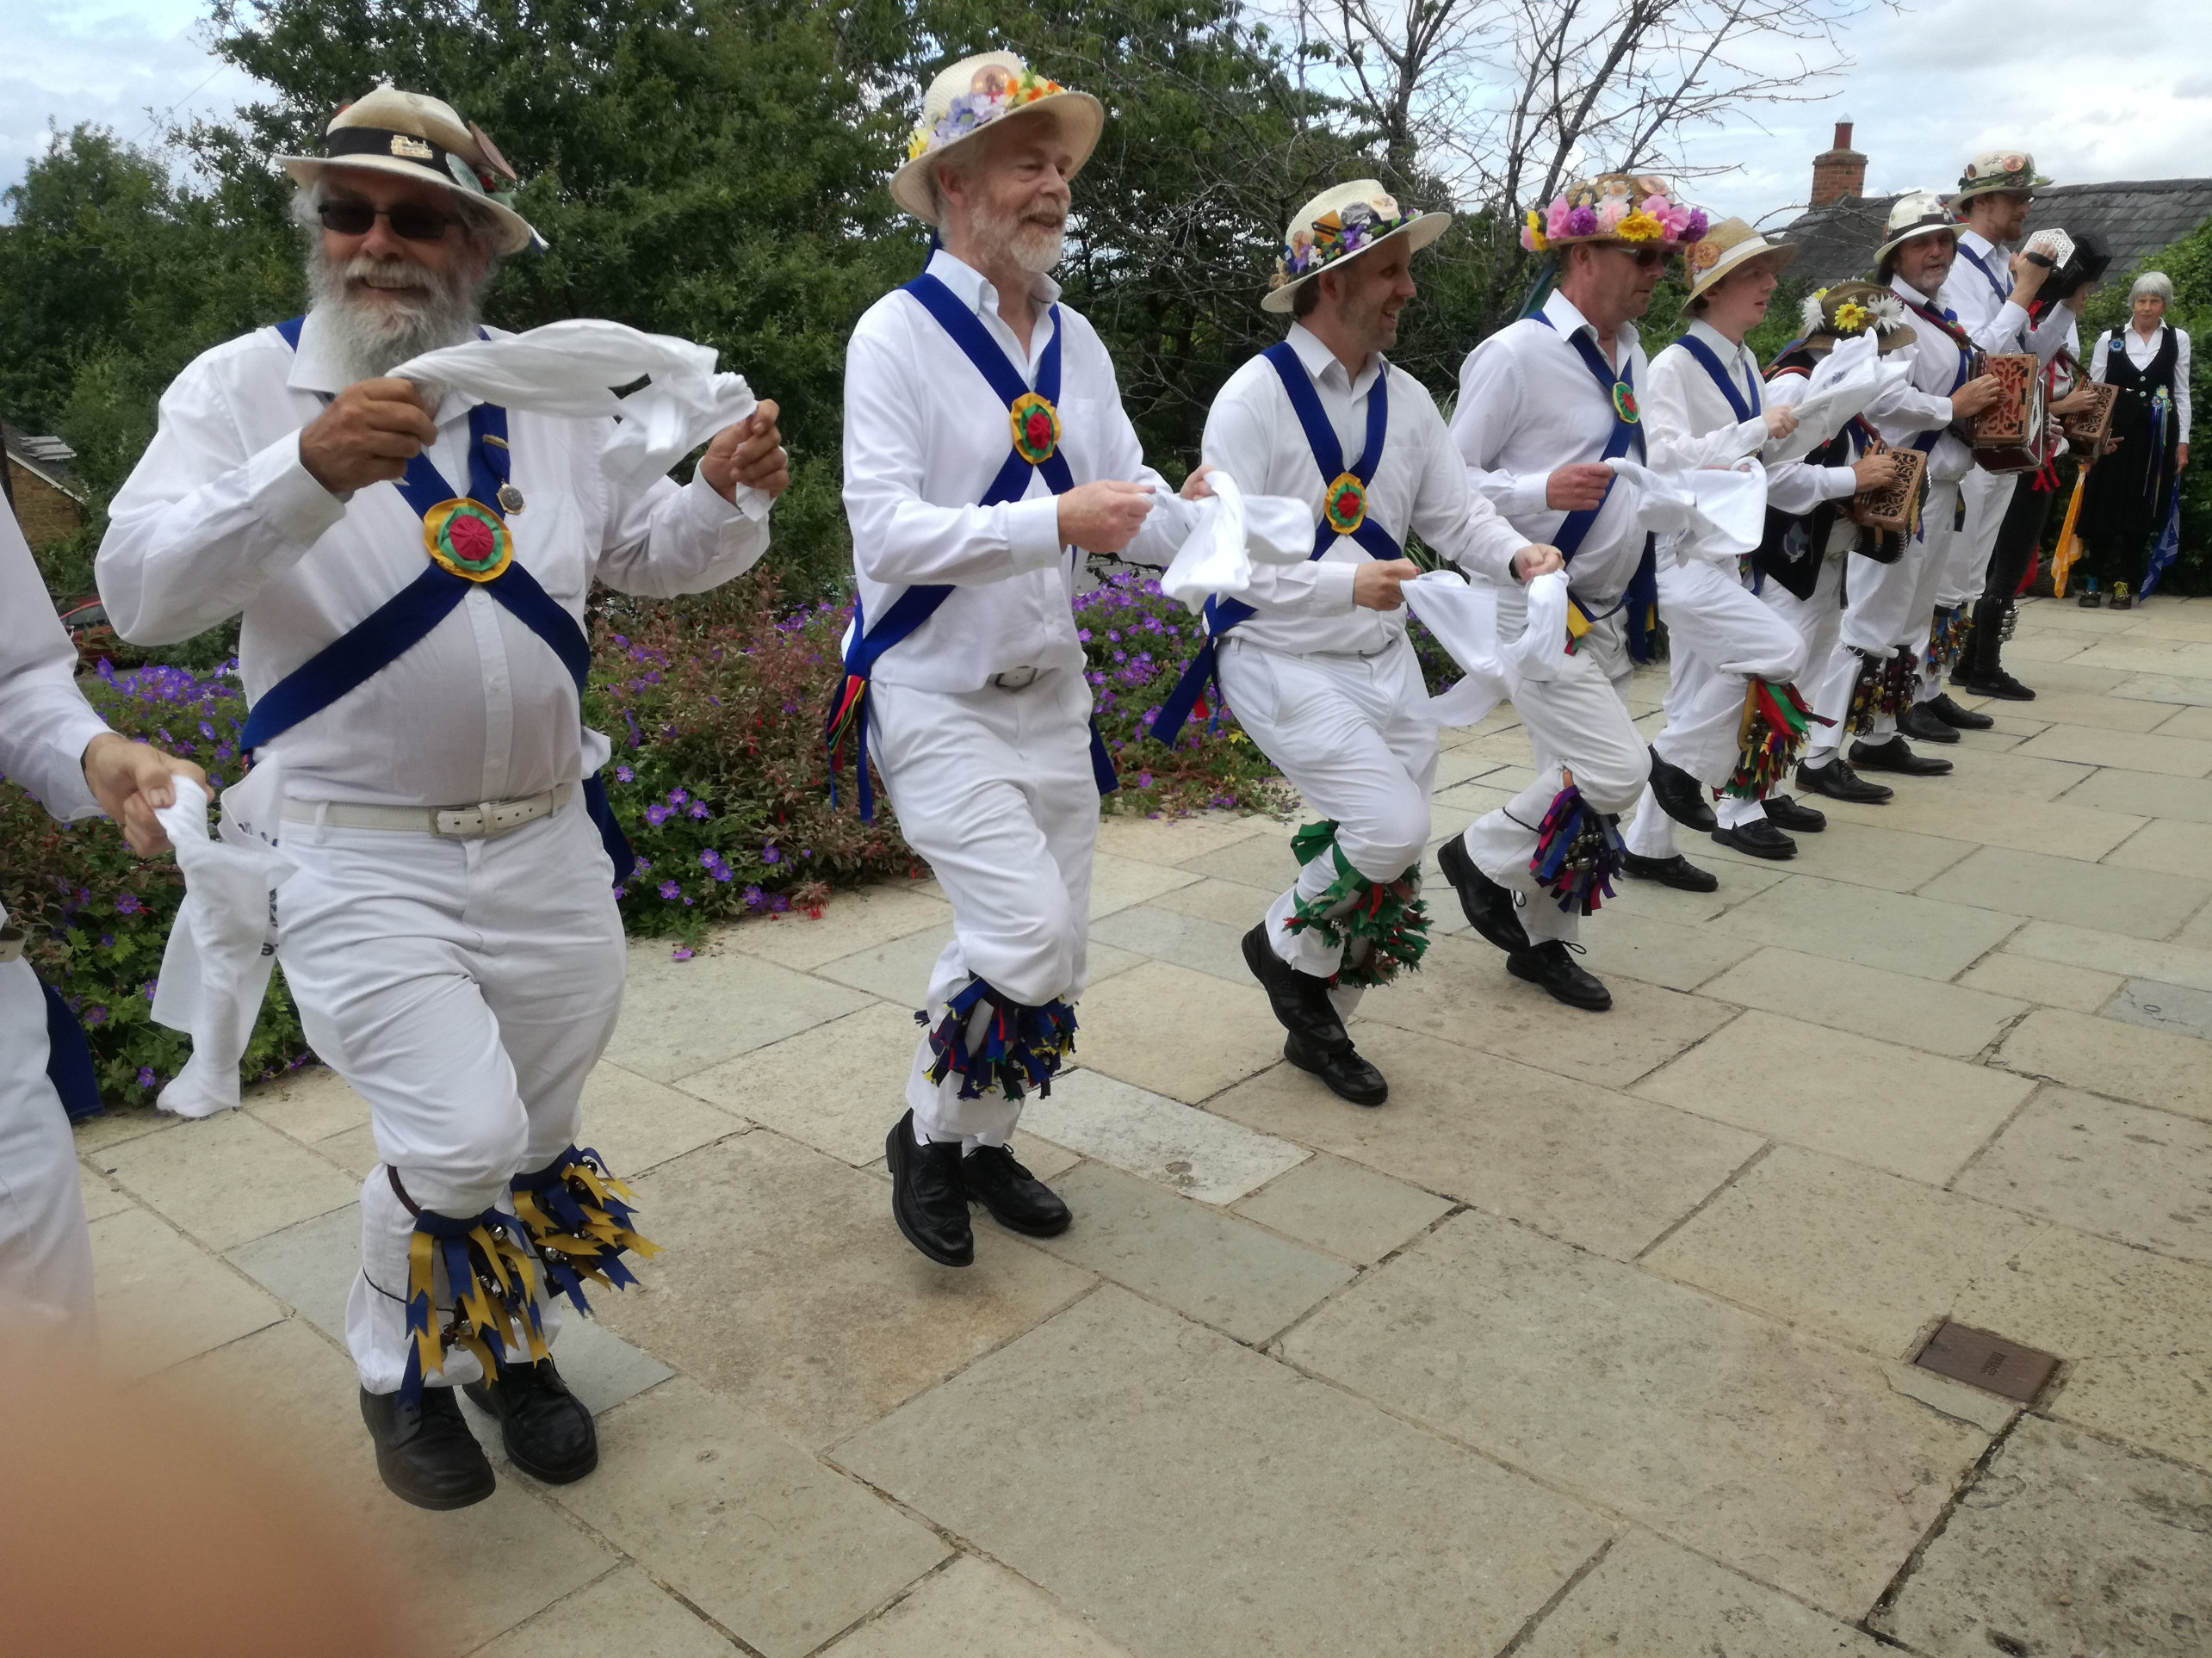 Dancing at the community centre - Ilmington